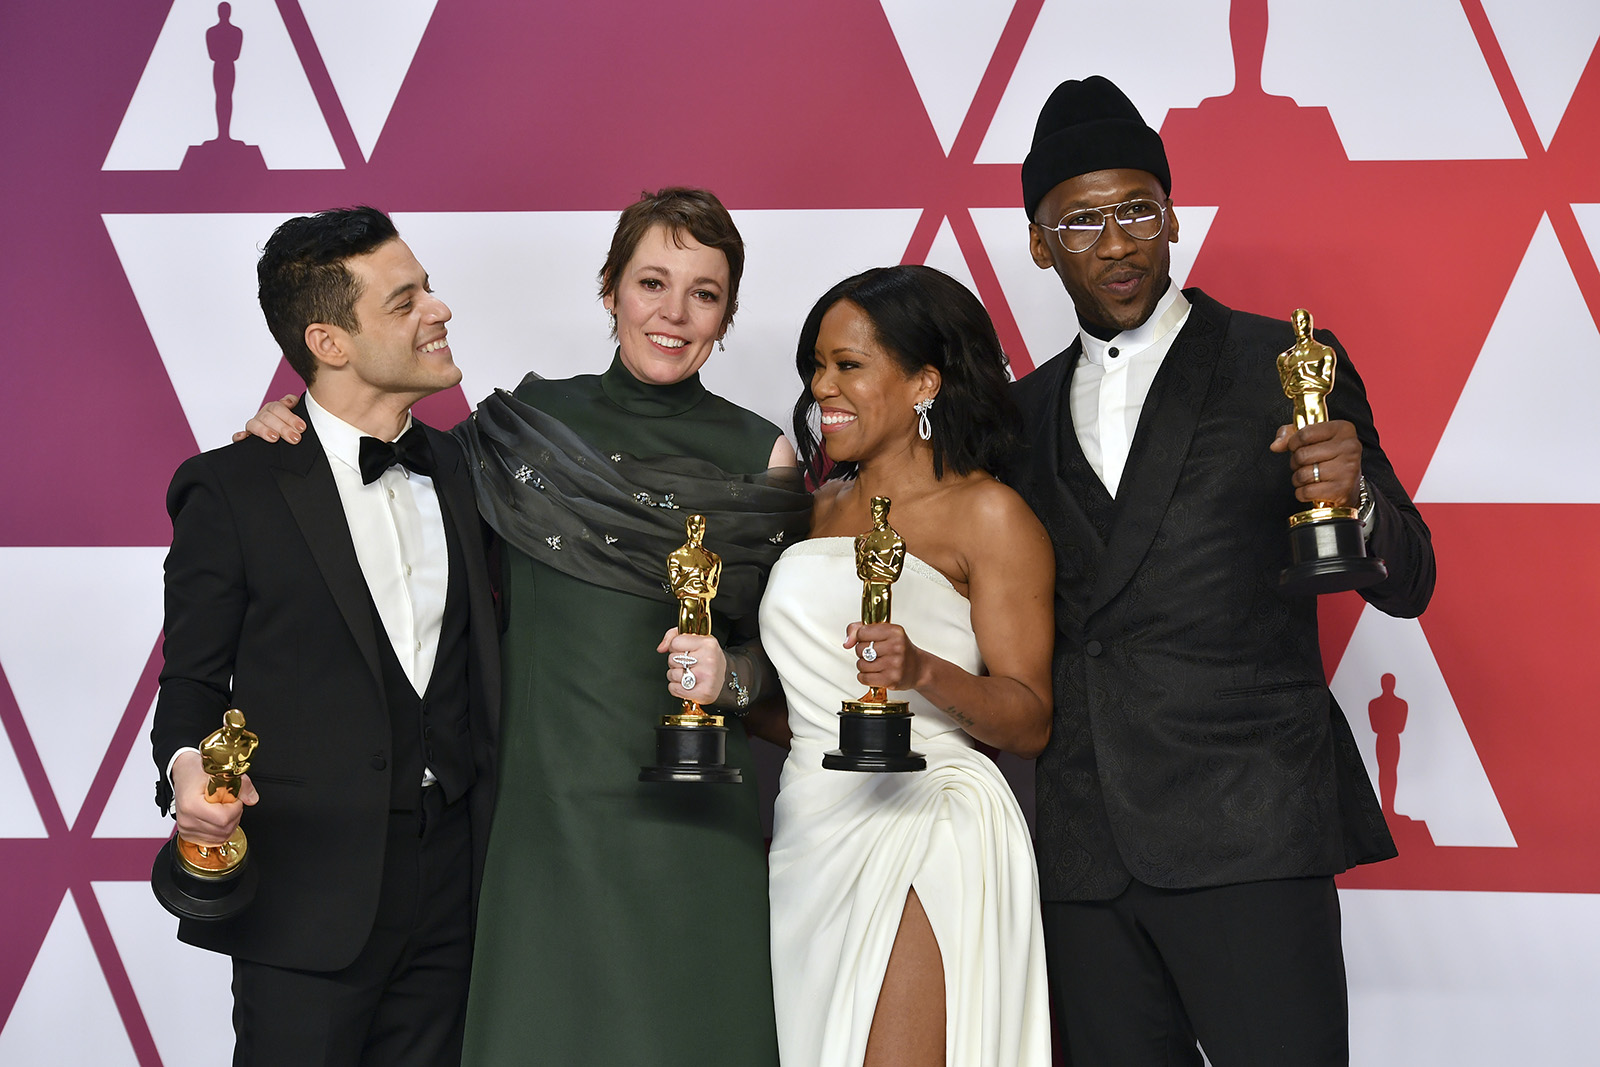 Rami Malek, from left, winner of the award for best performance by an actor in a leading role for ,Bohemian Rhapsody,, Olivia Colman, winner of the award for best performance by an actress in a leading role for ,The Favourite,, Regina King, winner of the award for best performance by an actress in a supporting role for ,If Beale Street Could Talk,, and Mahershala Ali, winner of the award for best performance by an actor in a supporting role for ,Green Book,, pose in the press room at the Oscars on Sunday, Feb. 24, 2019, at the Dolby Theatre in Los Angeles.